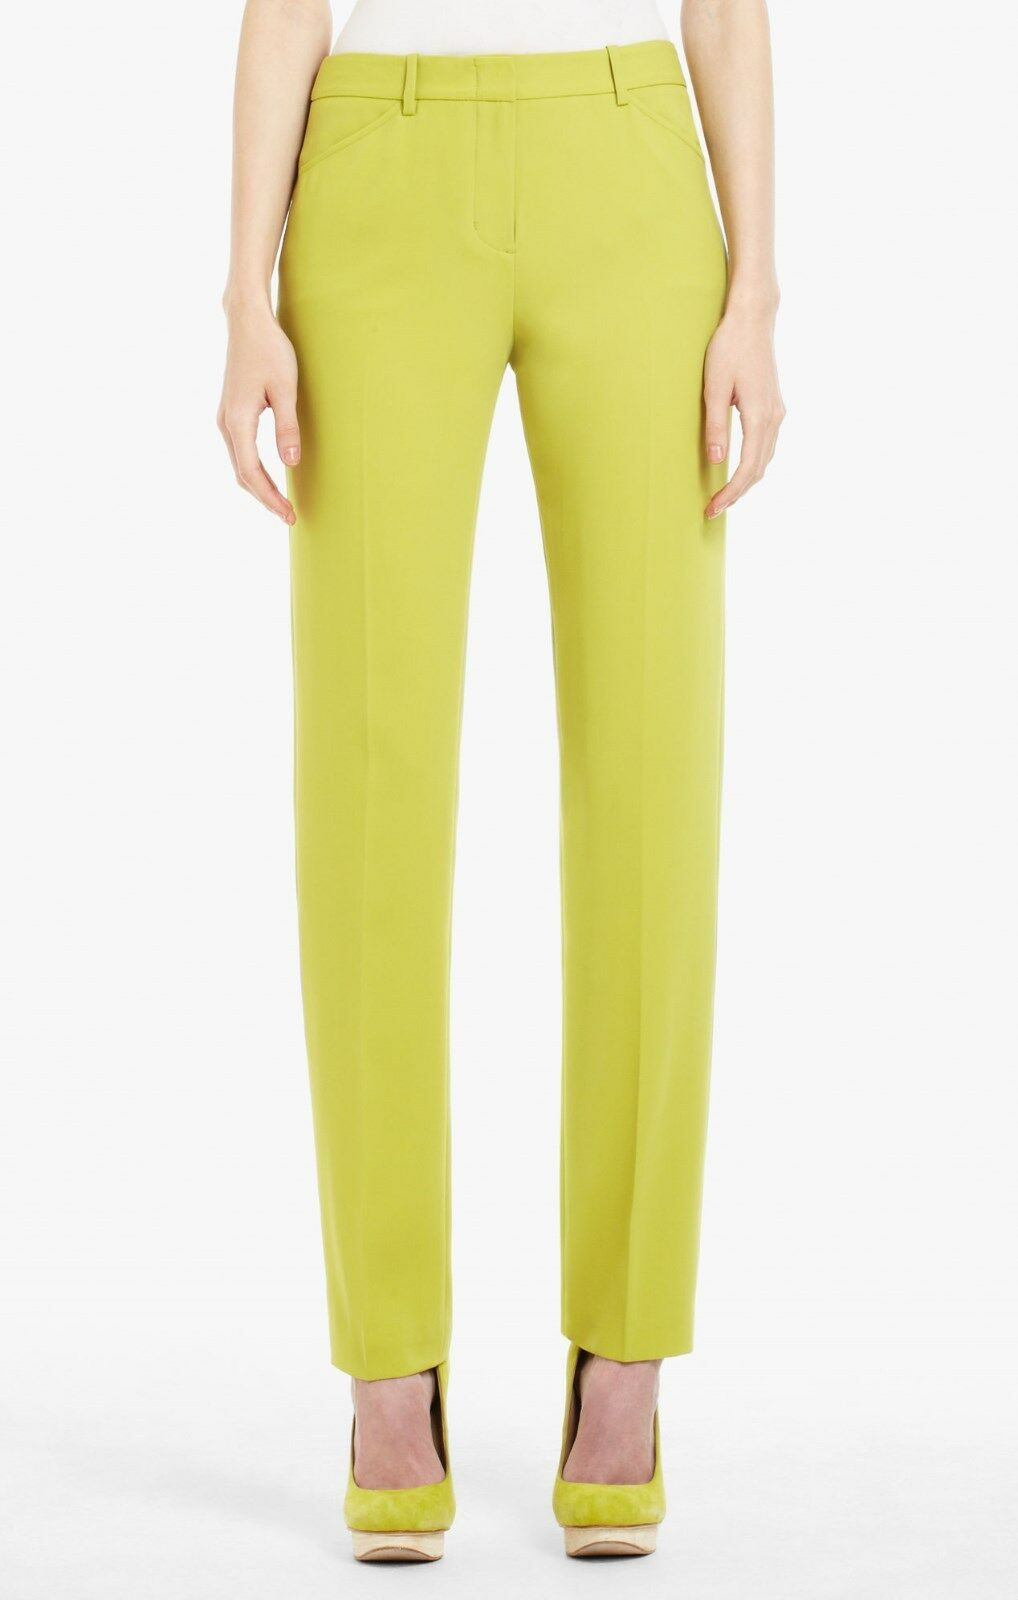 NEW BCBG MAX AZRIA DILL MONIQUE SLIM SRX2D279 AM41 PANT SIZE 0